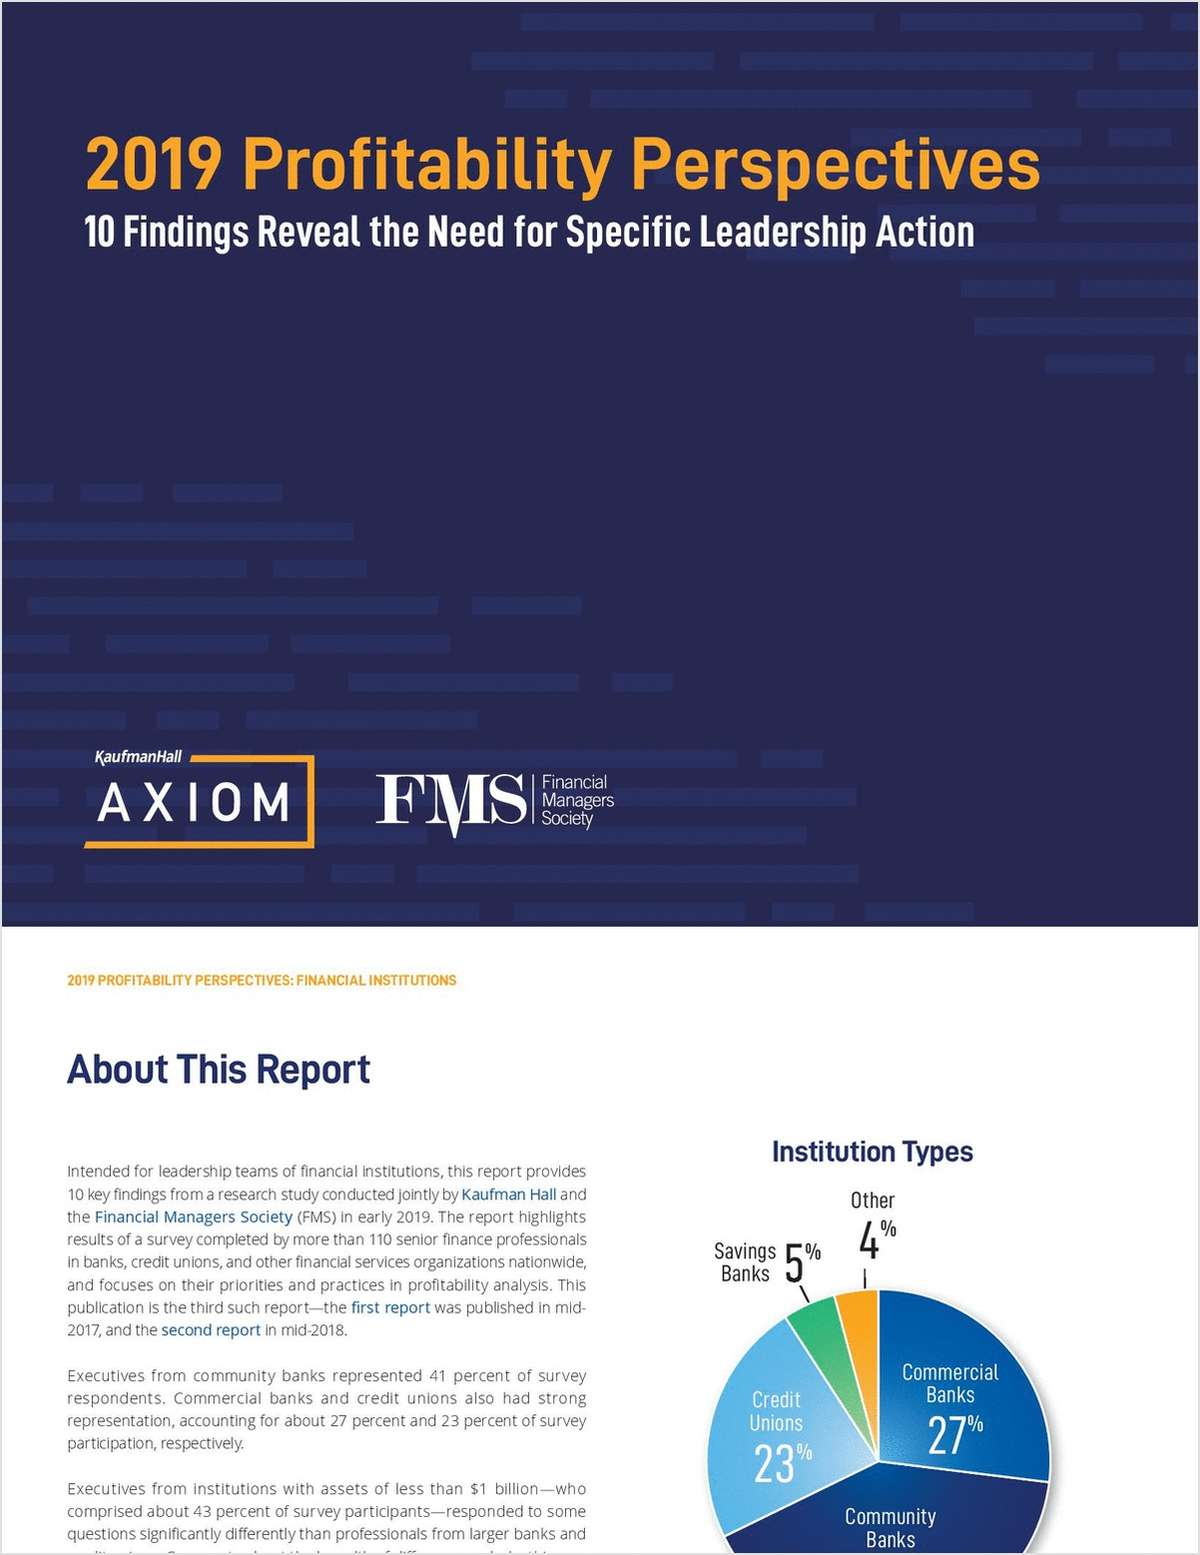 2019 Profitability Perspectives: 10 Findings Reveal the Need for Specific Leadership Action